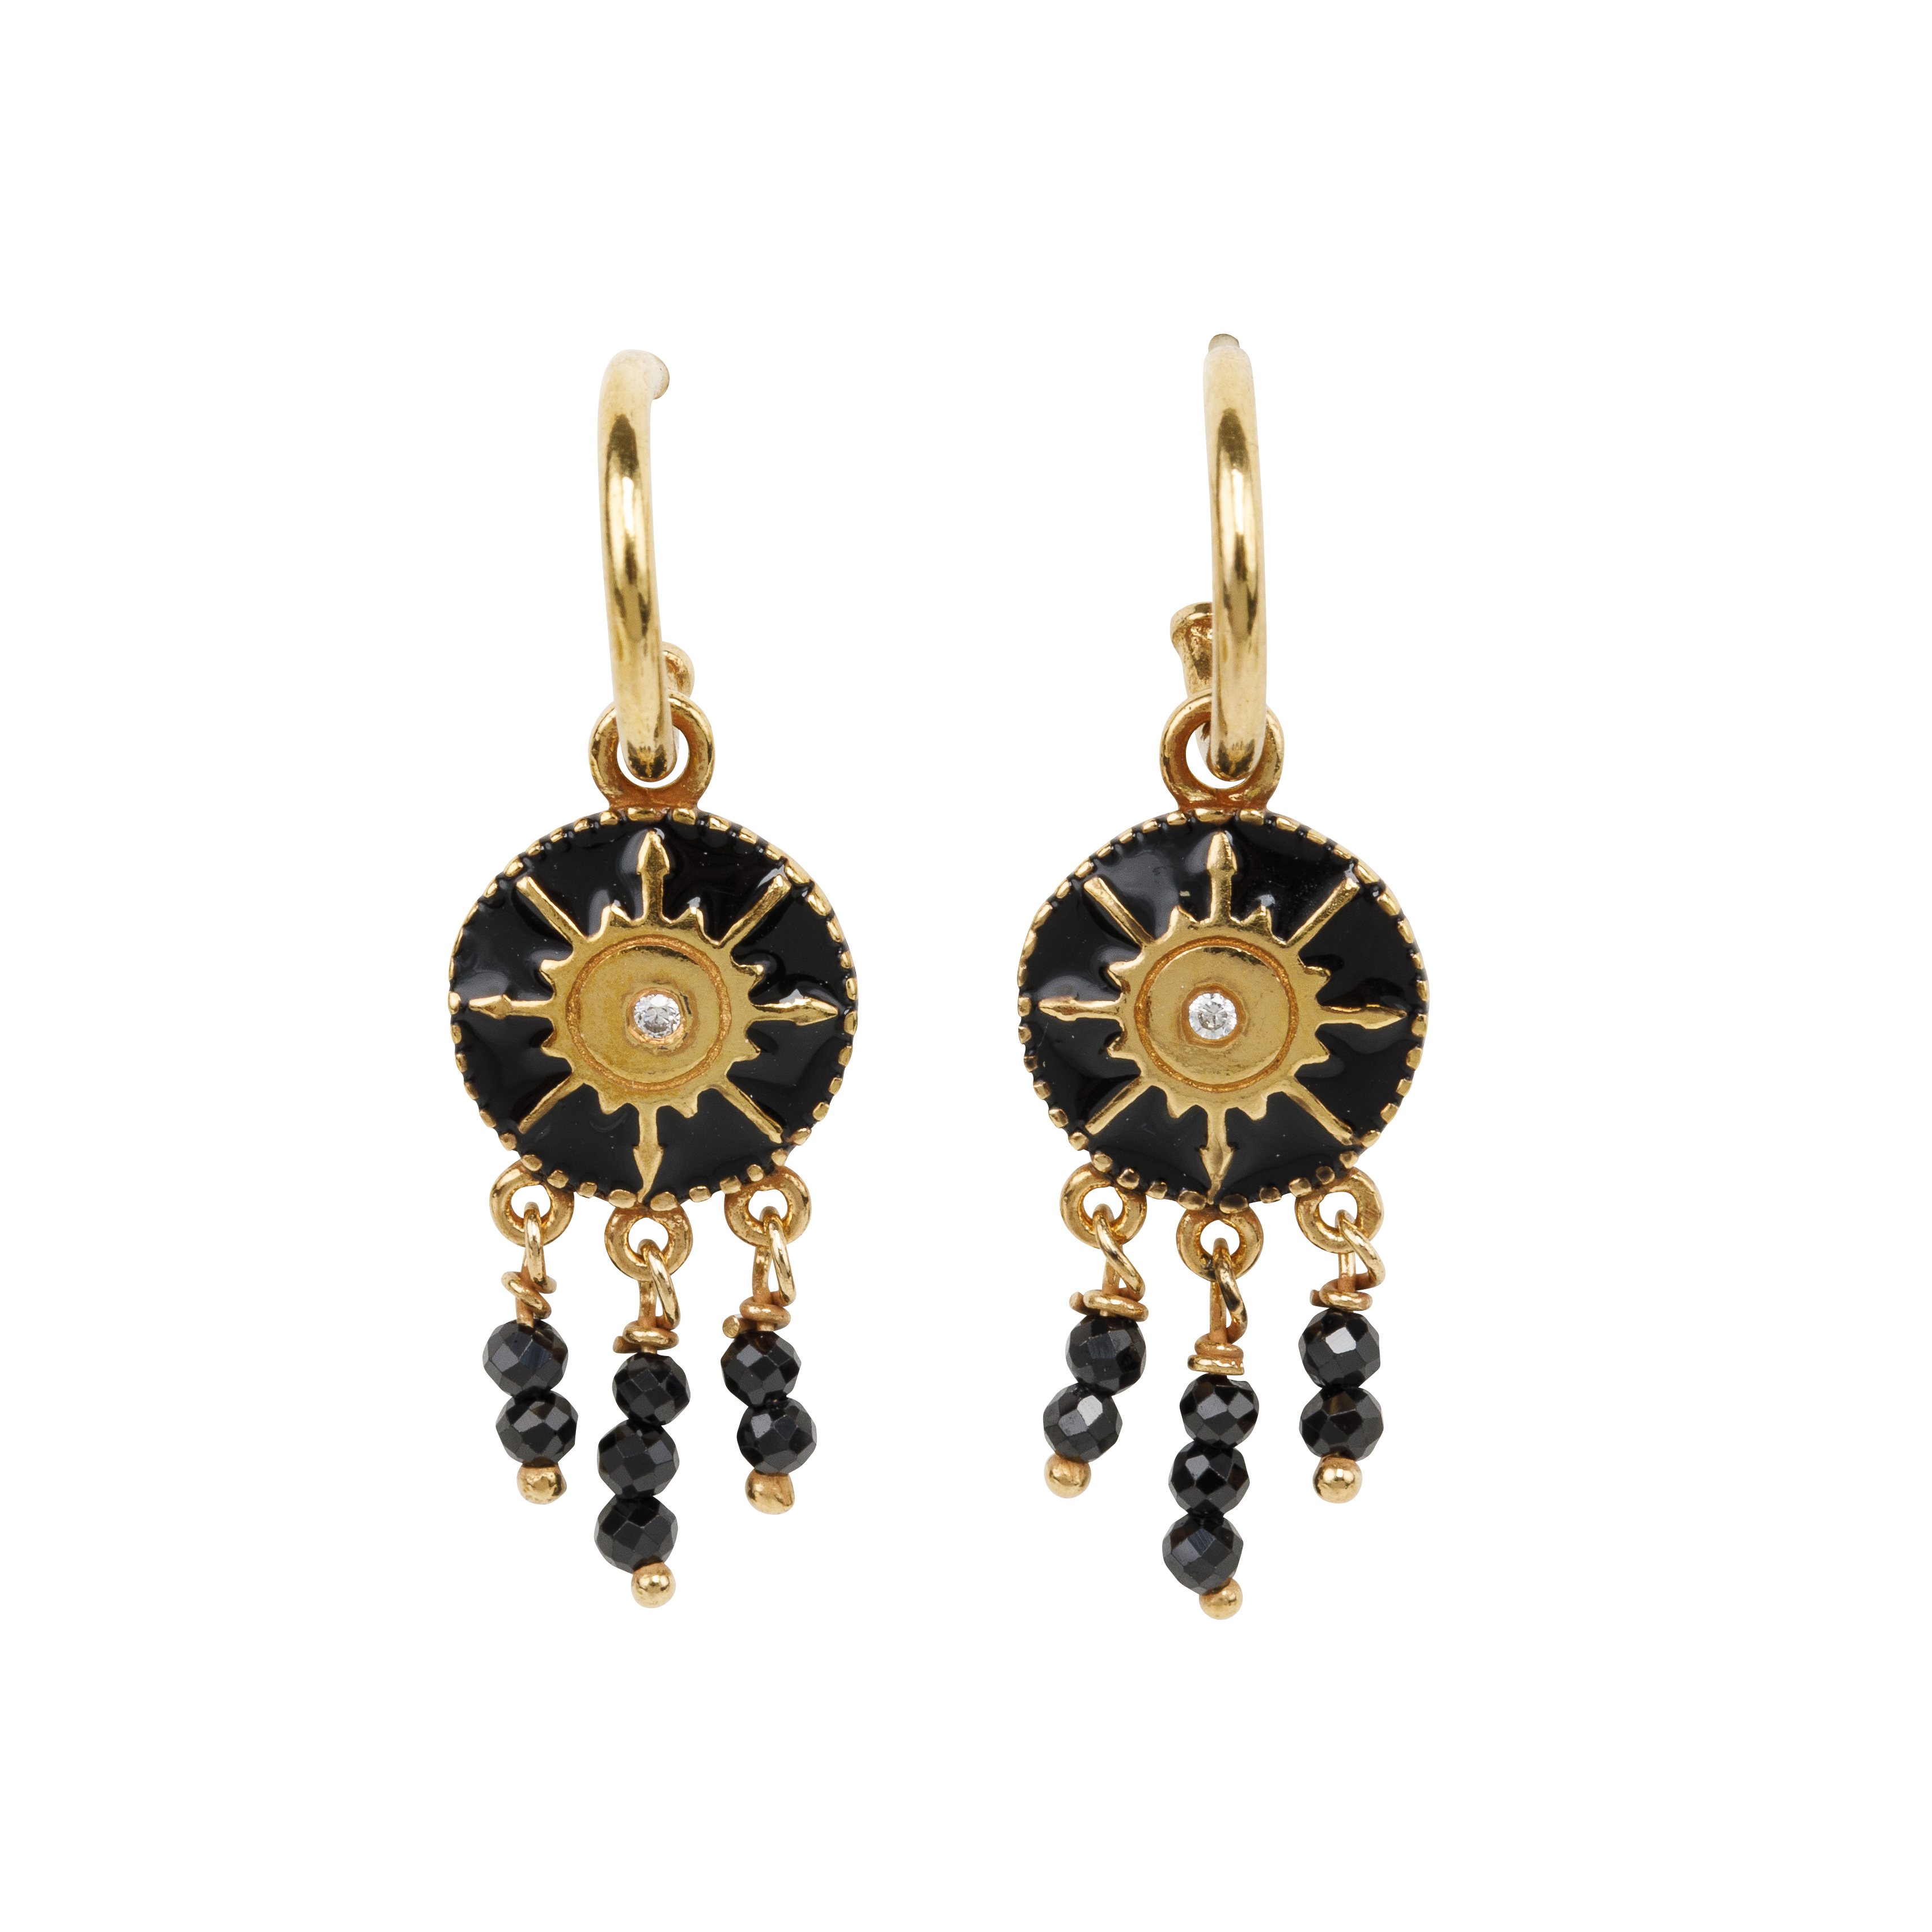 Une a Une - Earrings Pacifique Black BORVN